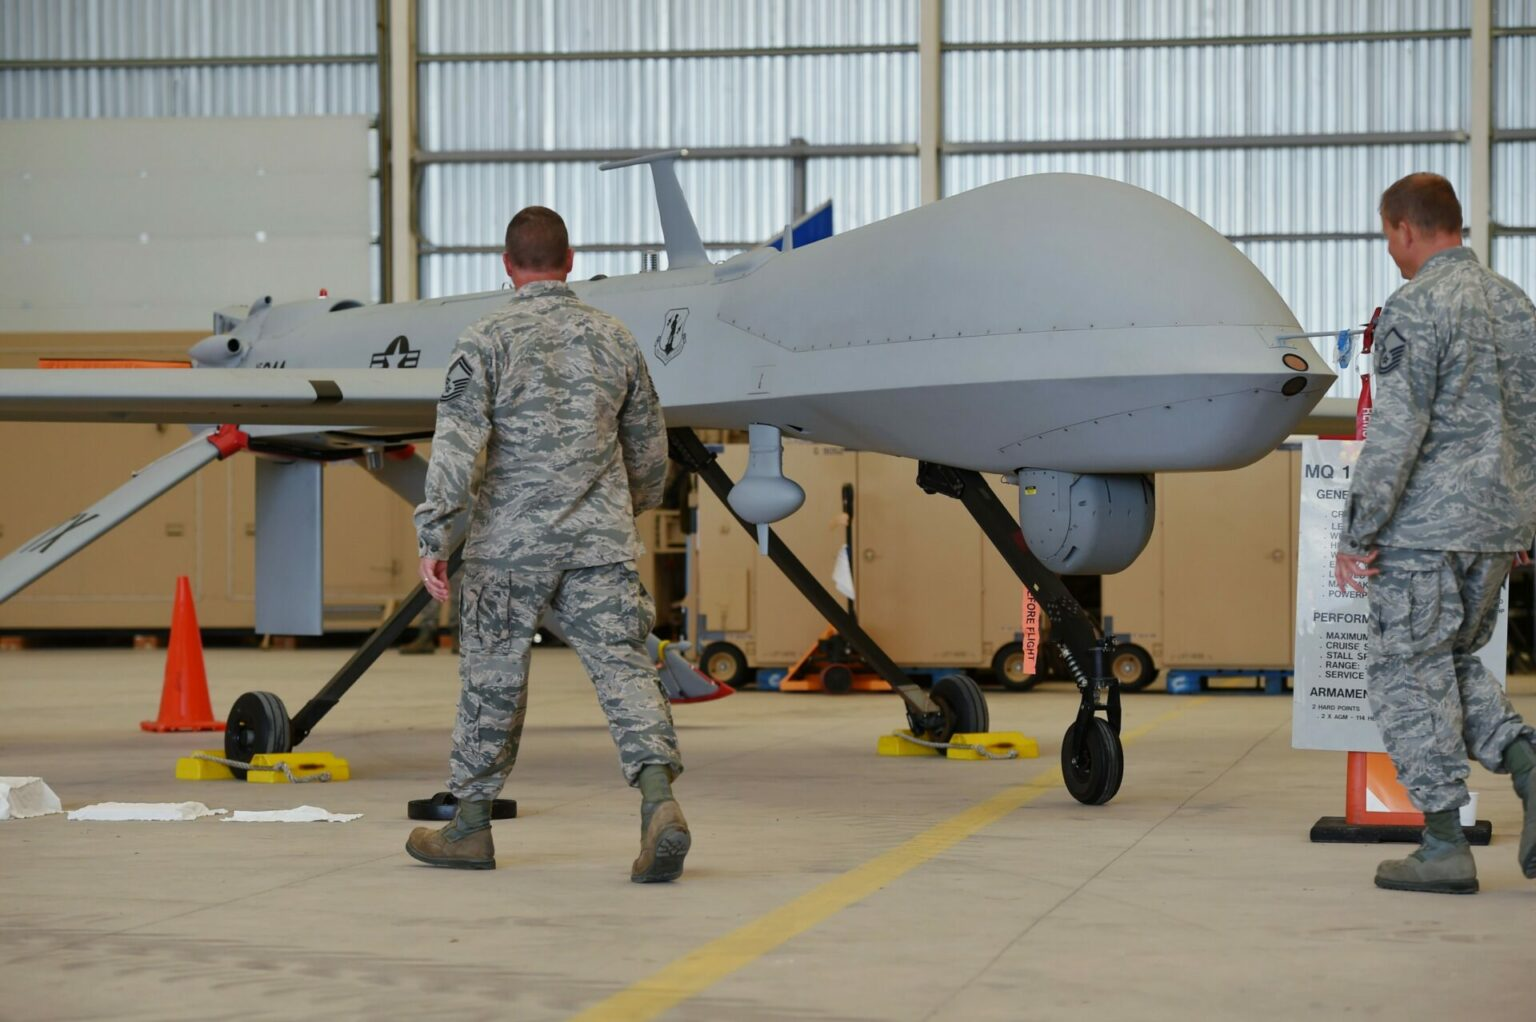 Soldiers pass a US unmanned remotely piloted aircraft MQ-1 Predator during a guest day at Lielvarde airbase, south-east of Riga, Latvia, on 8 September 2015. Latvia had confirmed a week before that two US Army Predator surveillance drones and 70 airmen had deployed to the base for a training mission. The name Predator may have been inspired by the movie featuring Arnold Schwarzenegger.